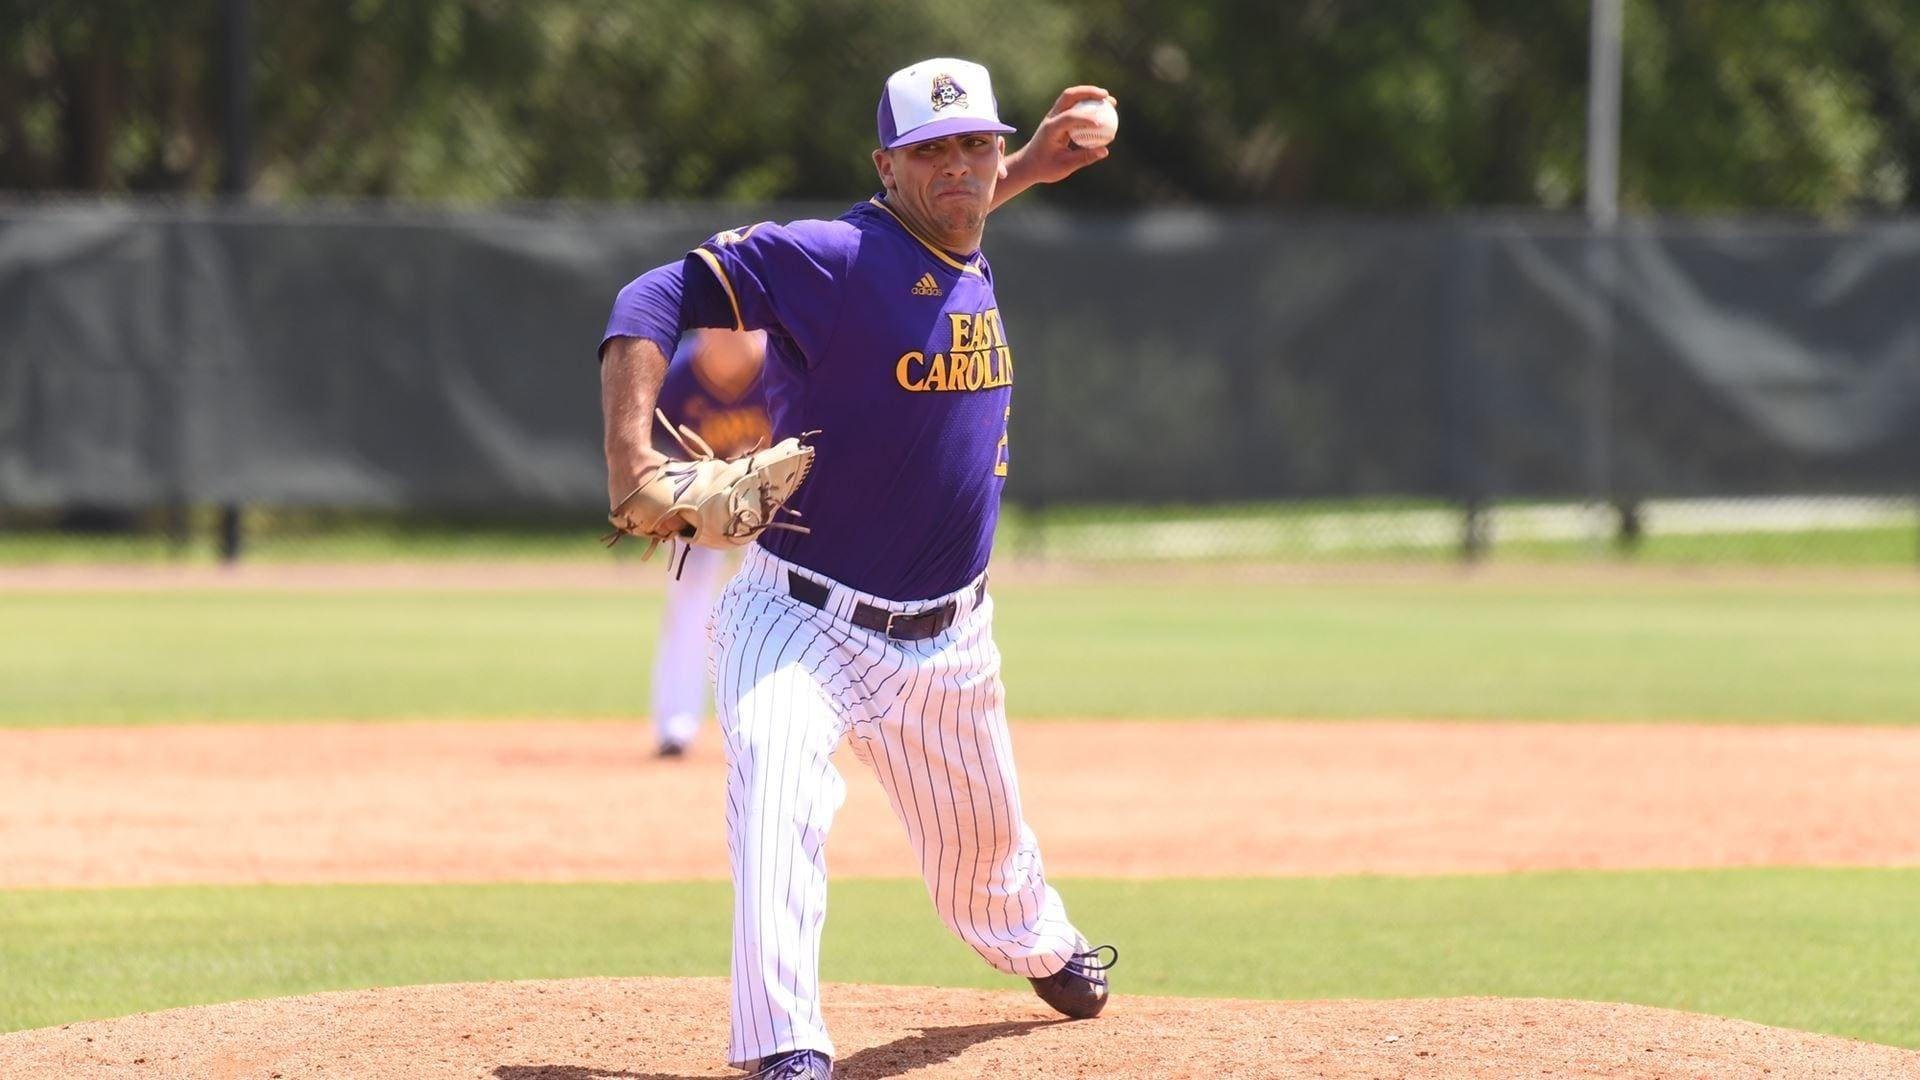 In 2019, Jake Kuchmaner pitched the 30th perfect game in college baseball history.